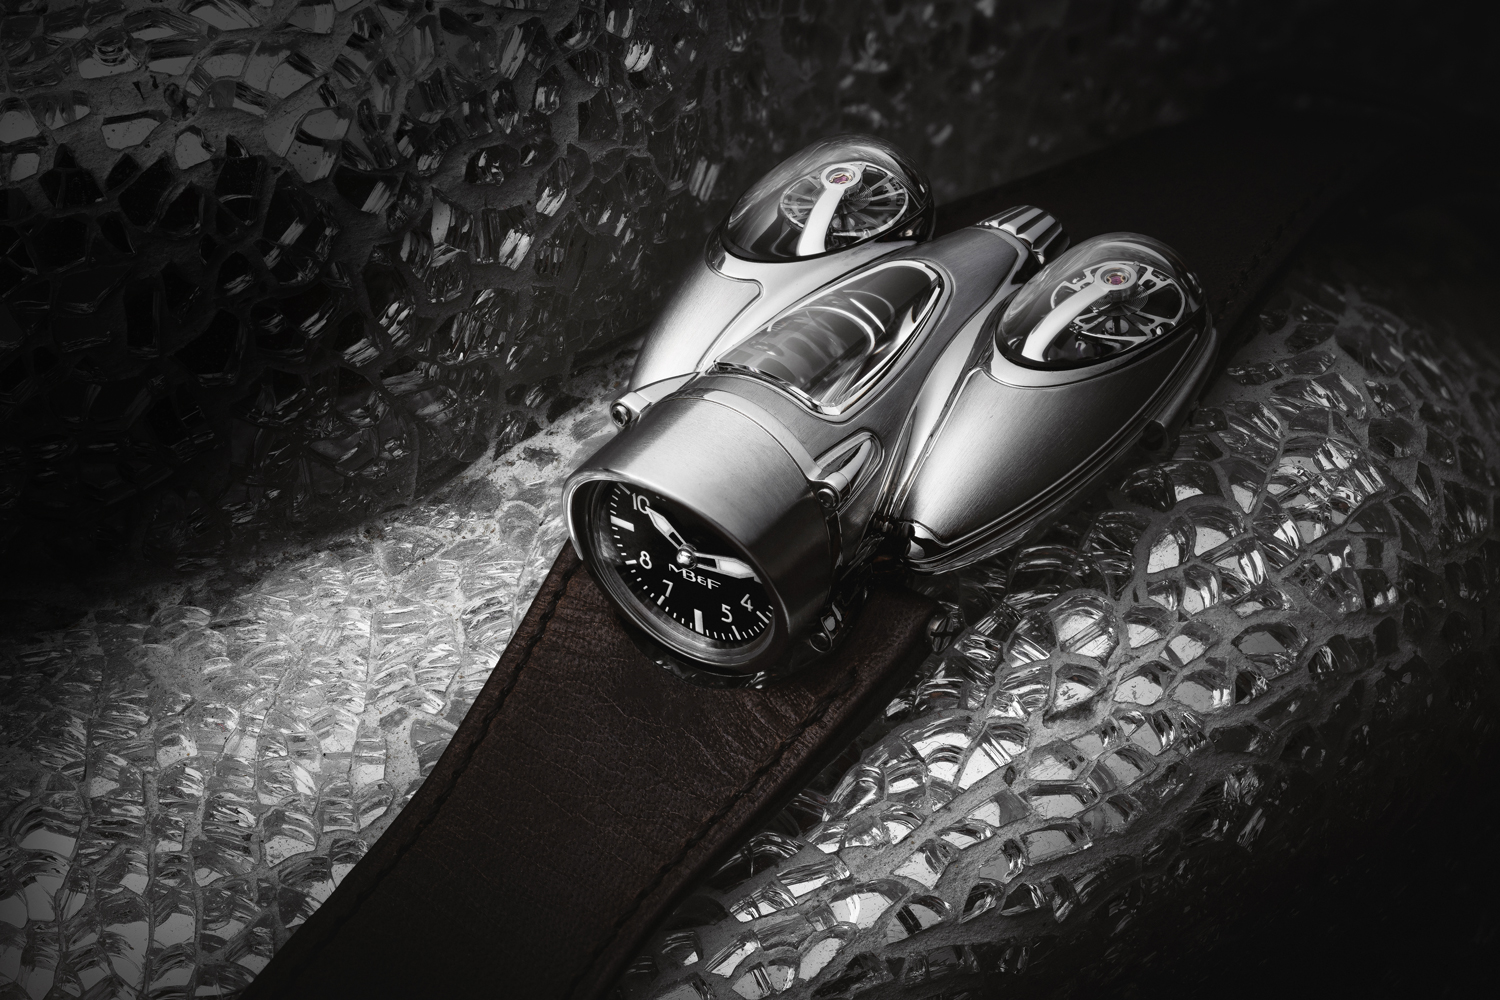 MB&F Horological Machine No. 9, Flow, Air version